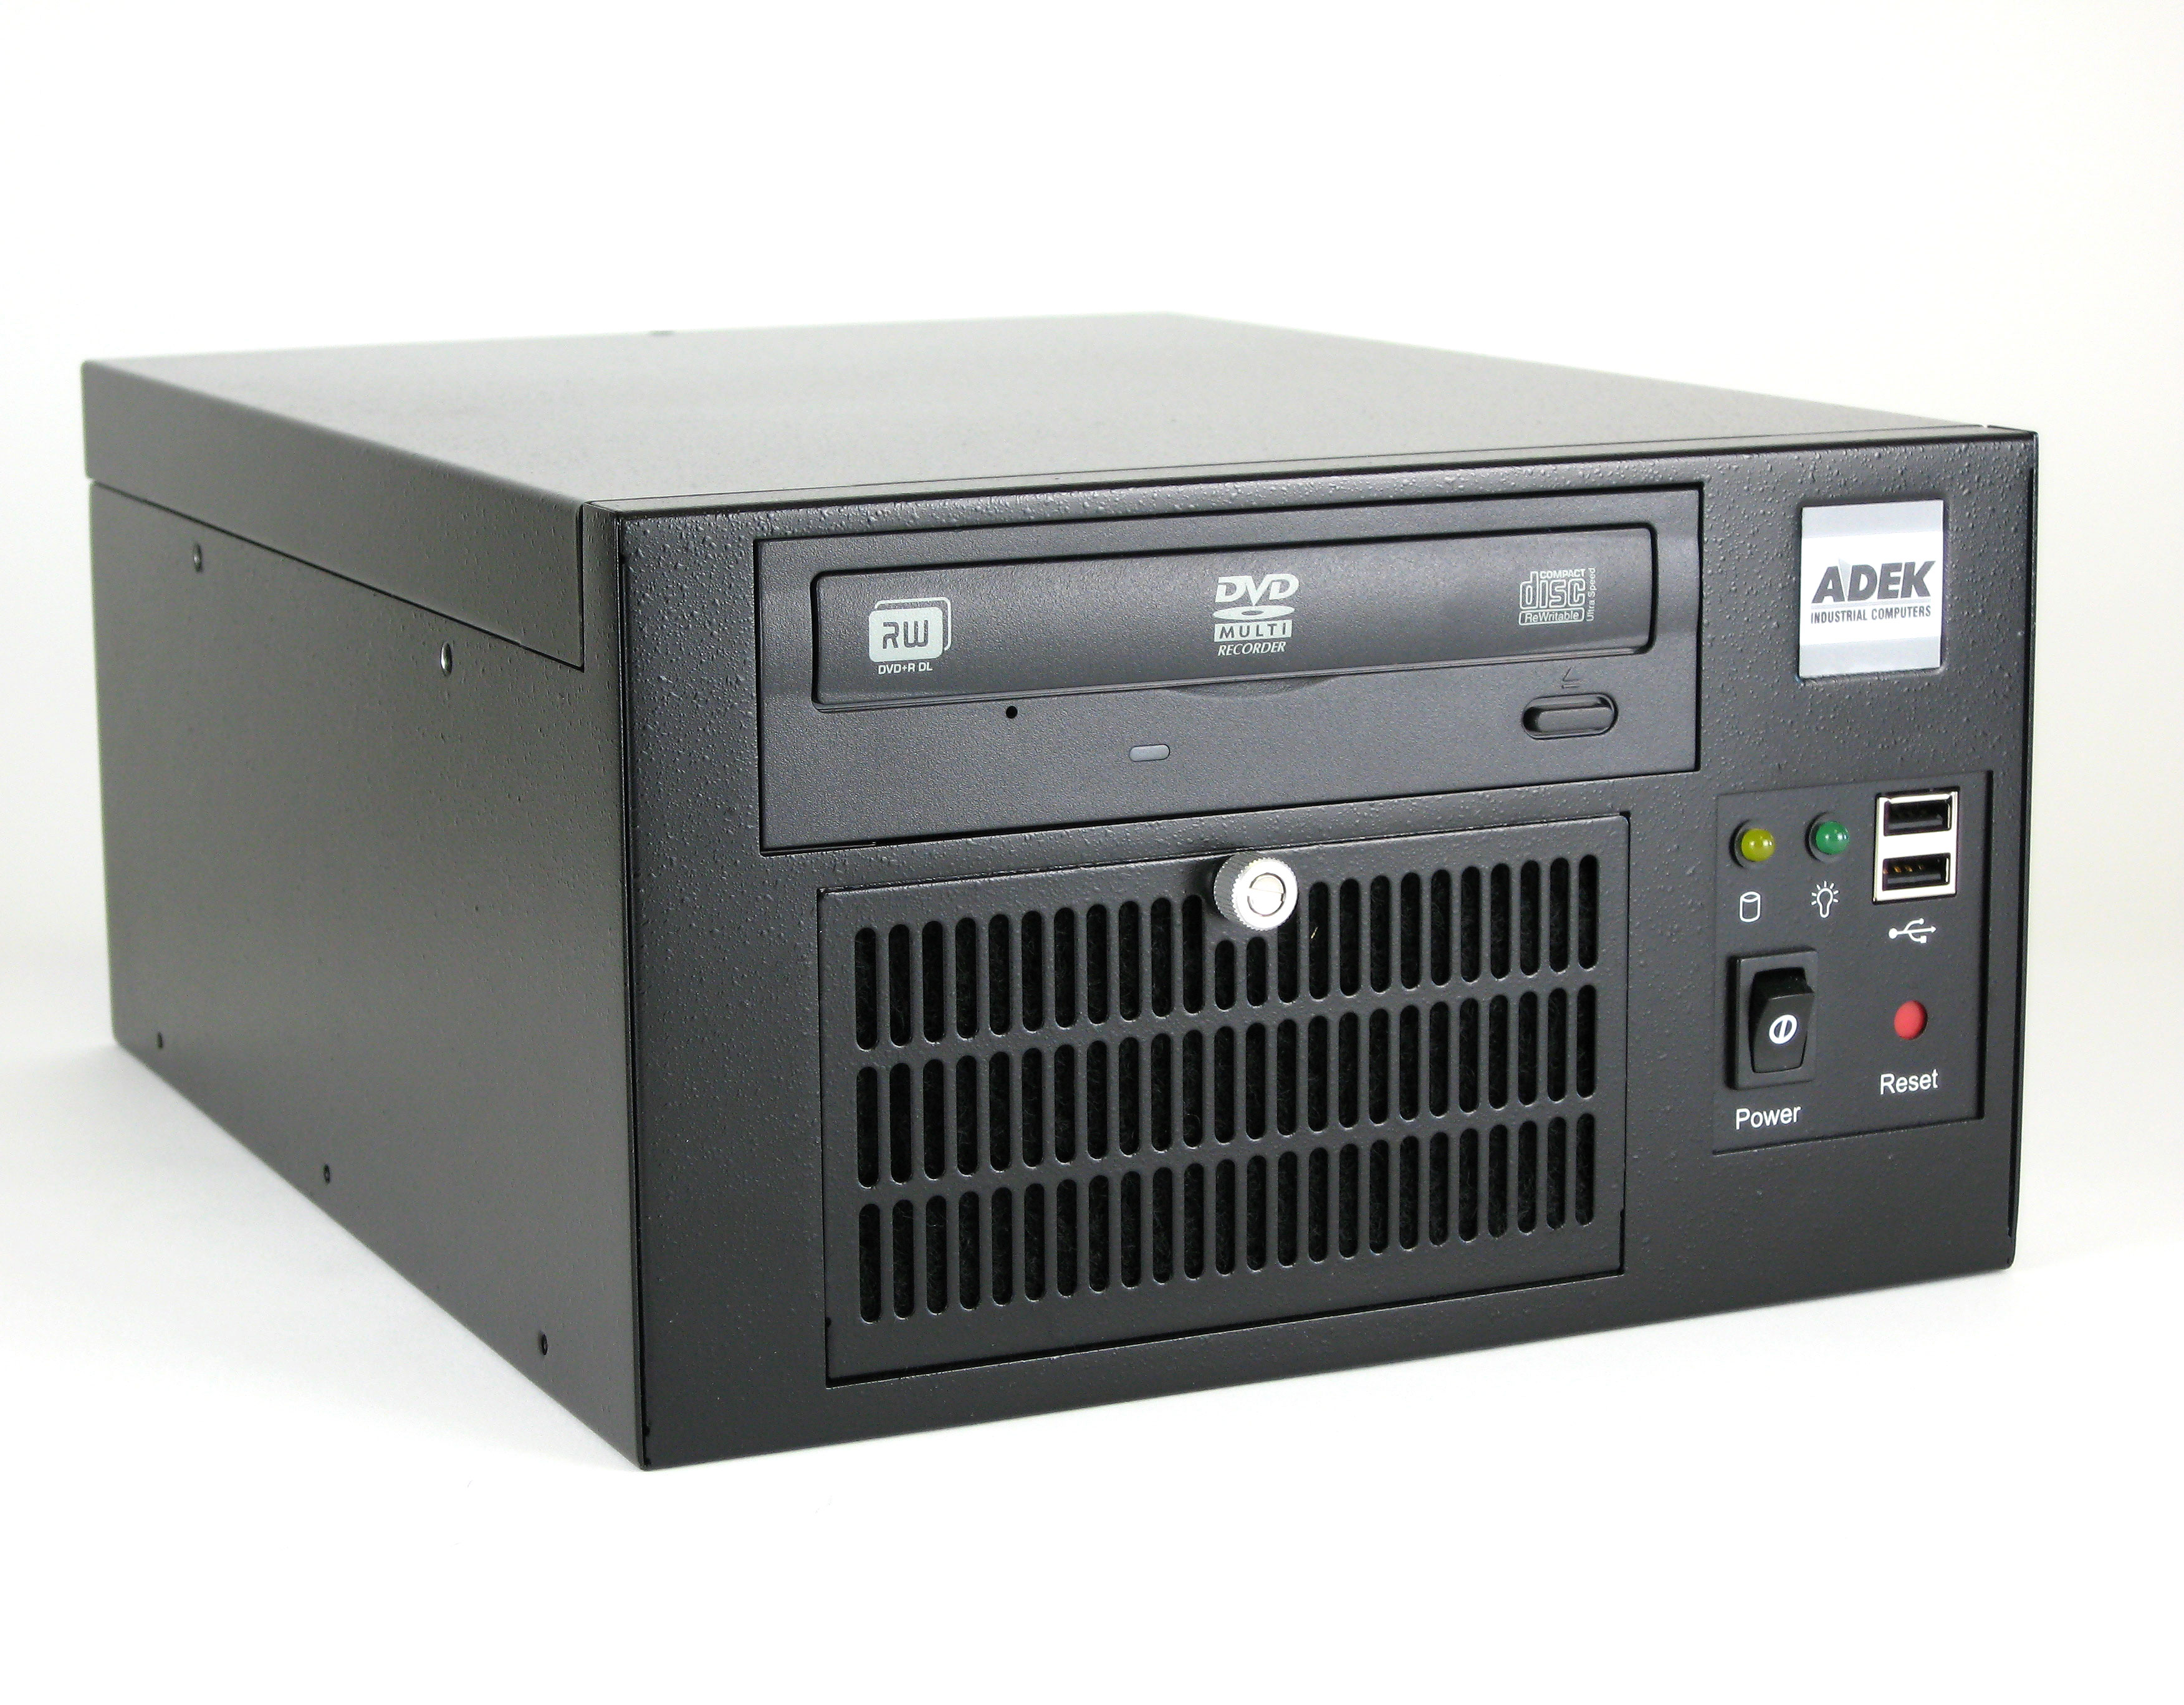 Mini-ITX Panel Mount Computer Front